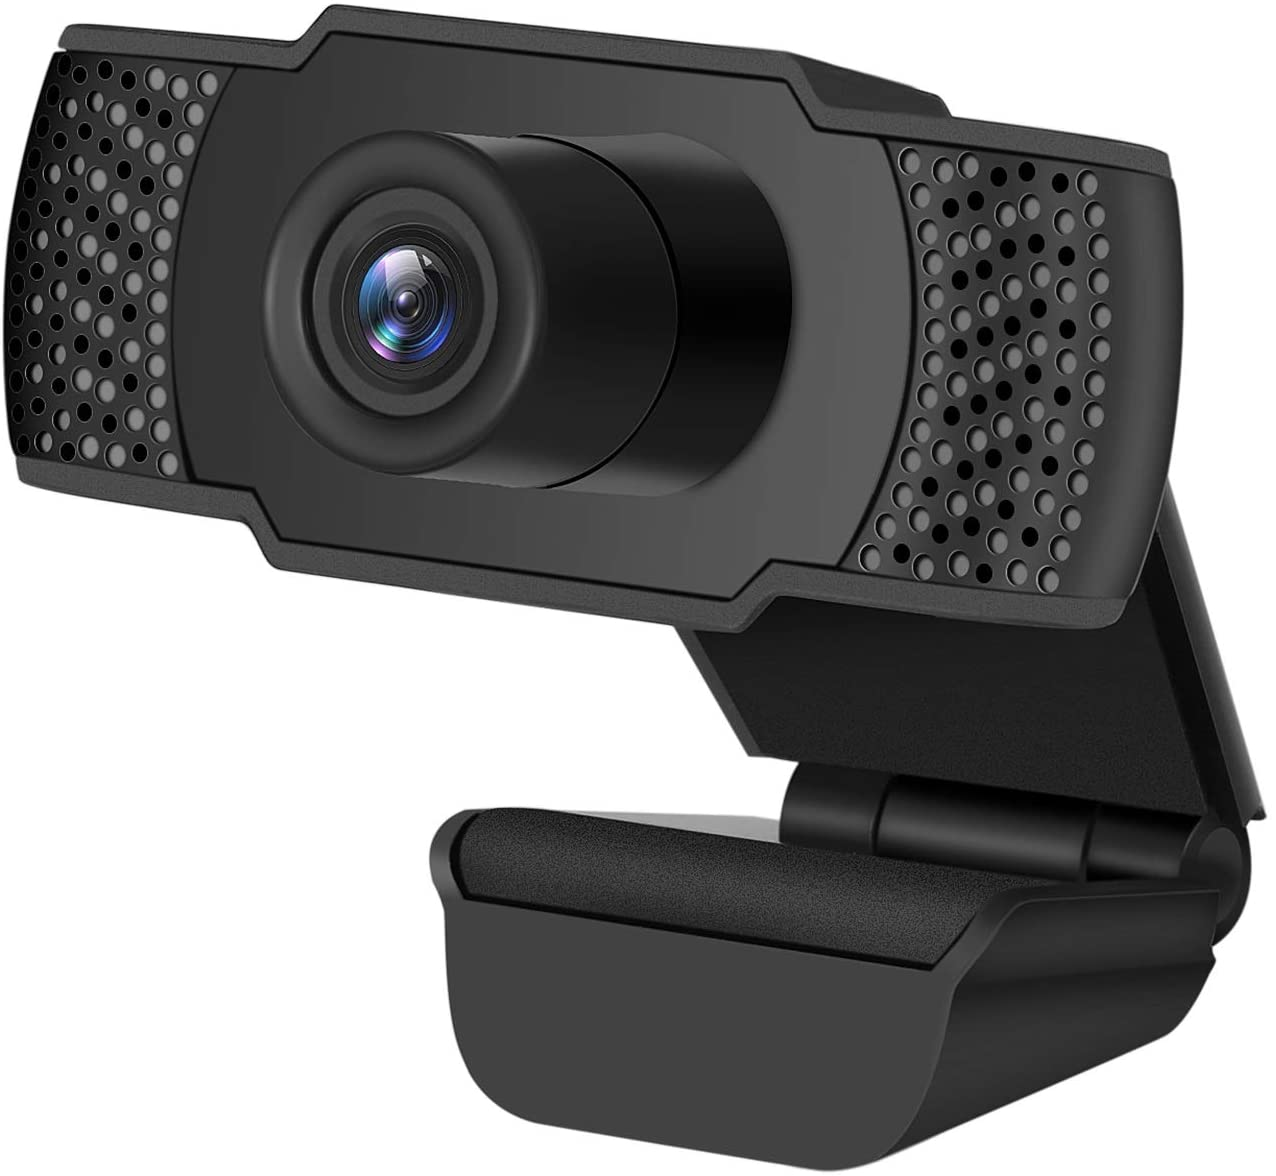 enow - best webcam for yuotube